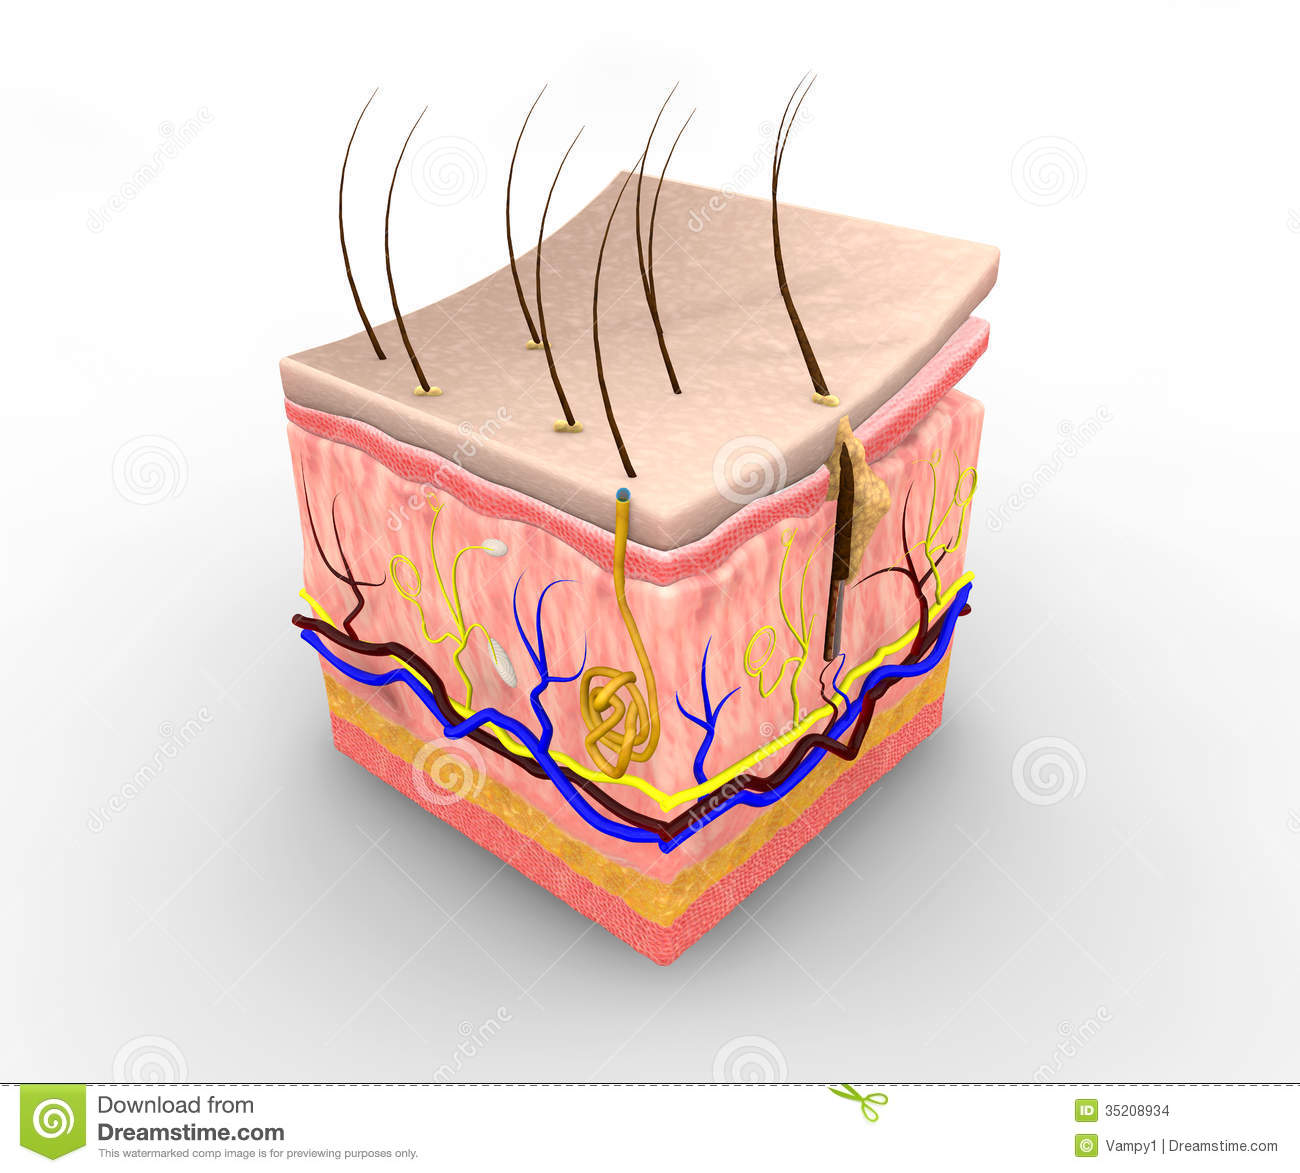 layers of epithelial tissue